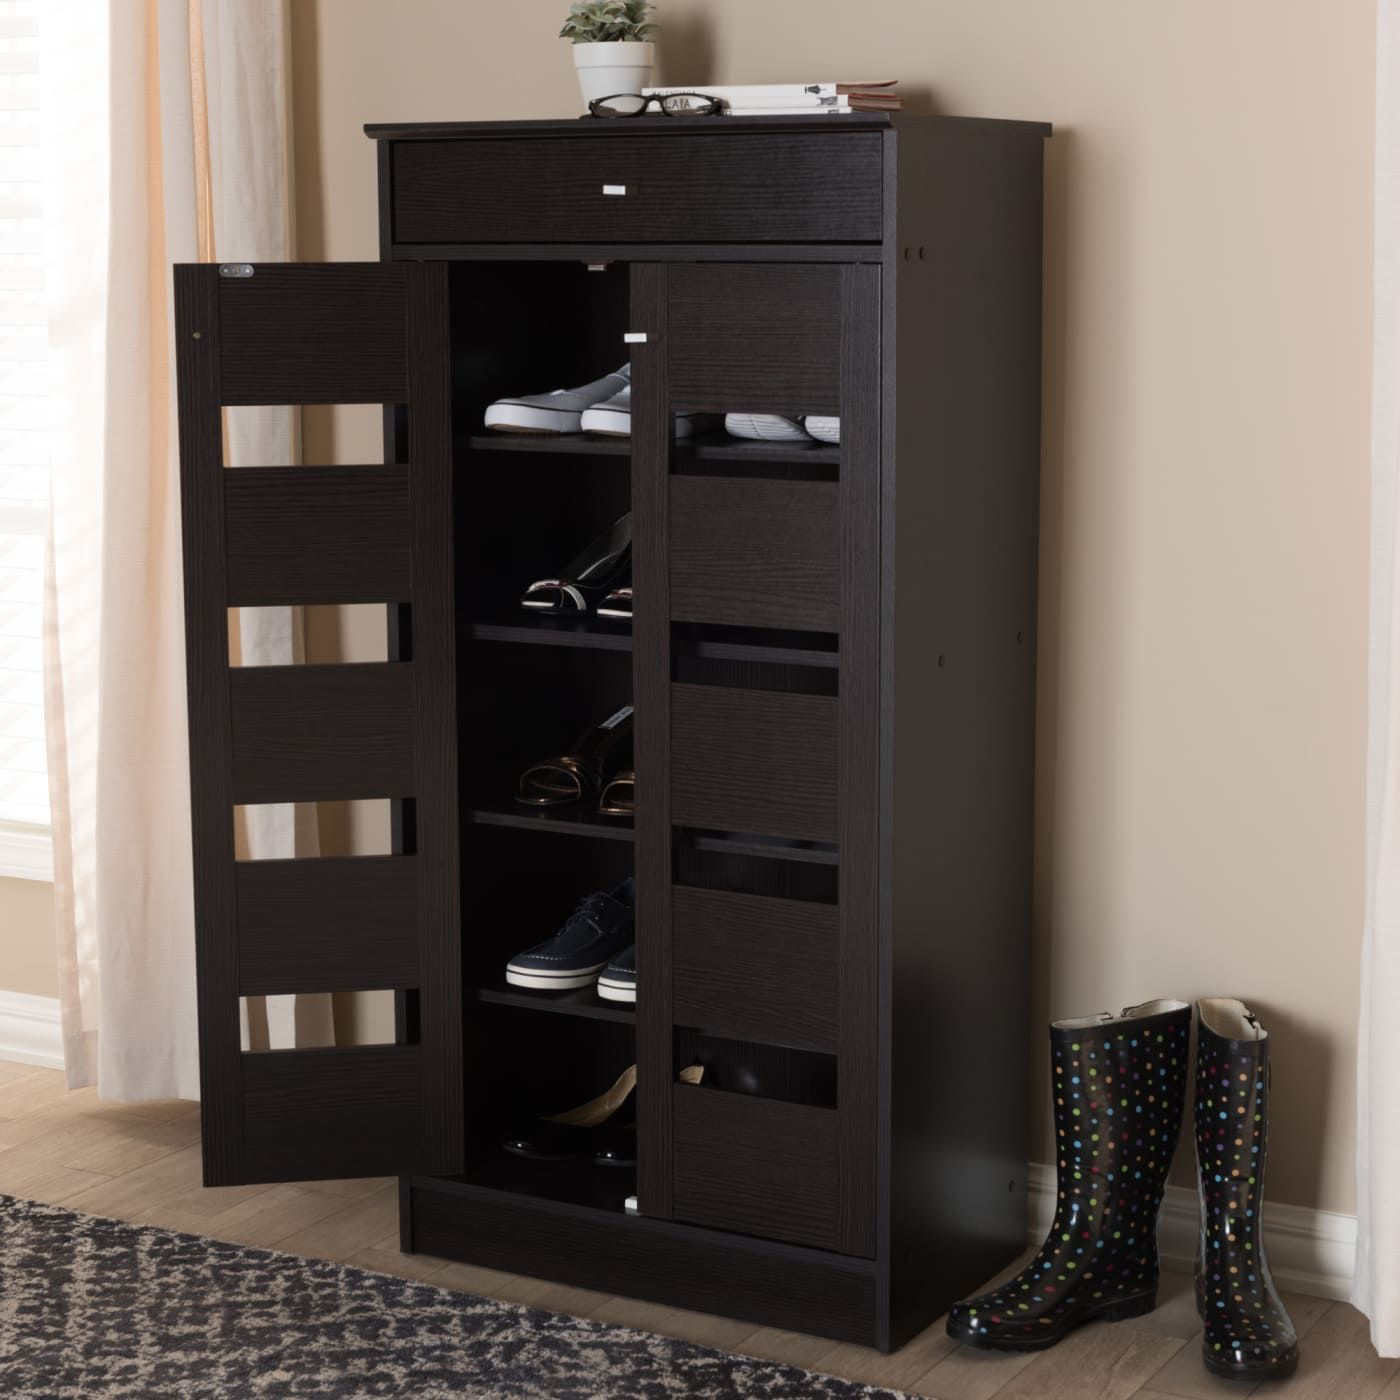 Keep Your Space Tidy And Stylish With The Acadia Shoe Cabinet Shoe Cabinet Shoe Storage Cabinet Wooden Shoe Racks